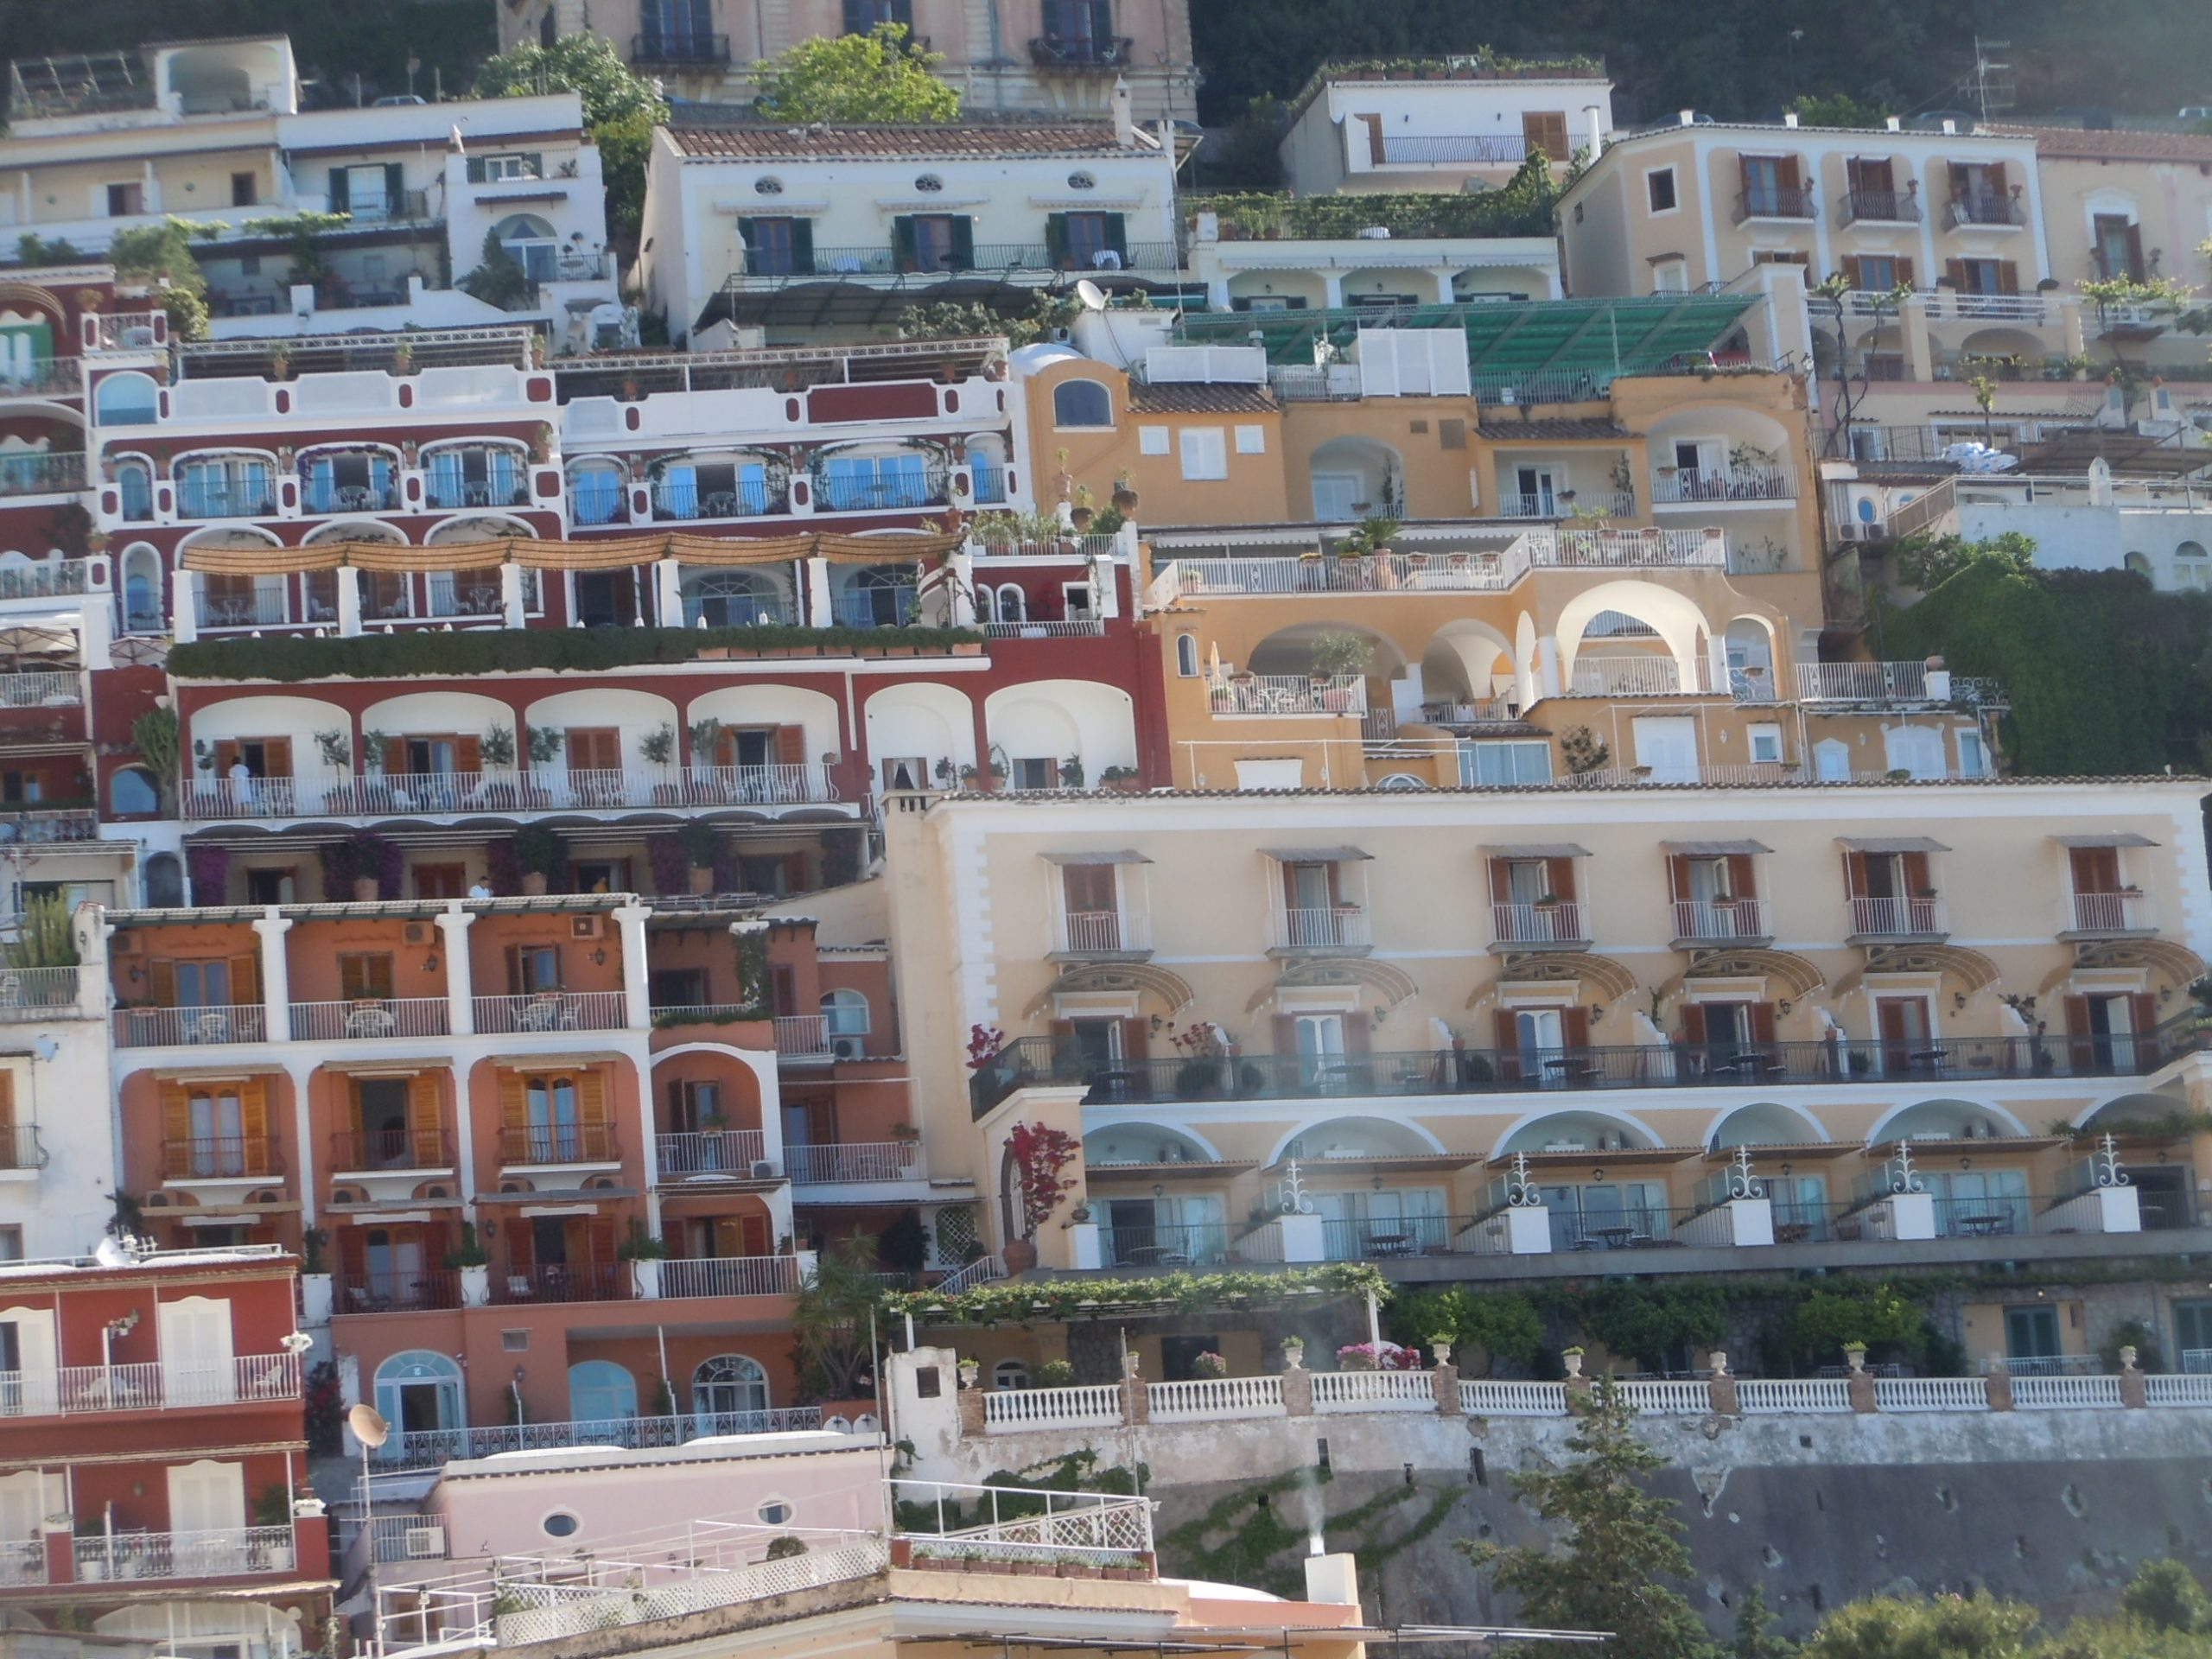 hotels and homes on the cliffs above Positano, Sicily